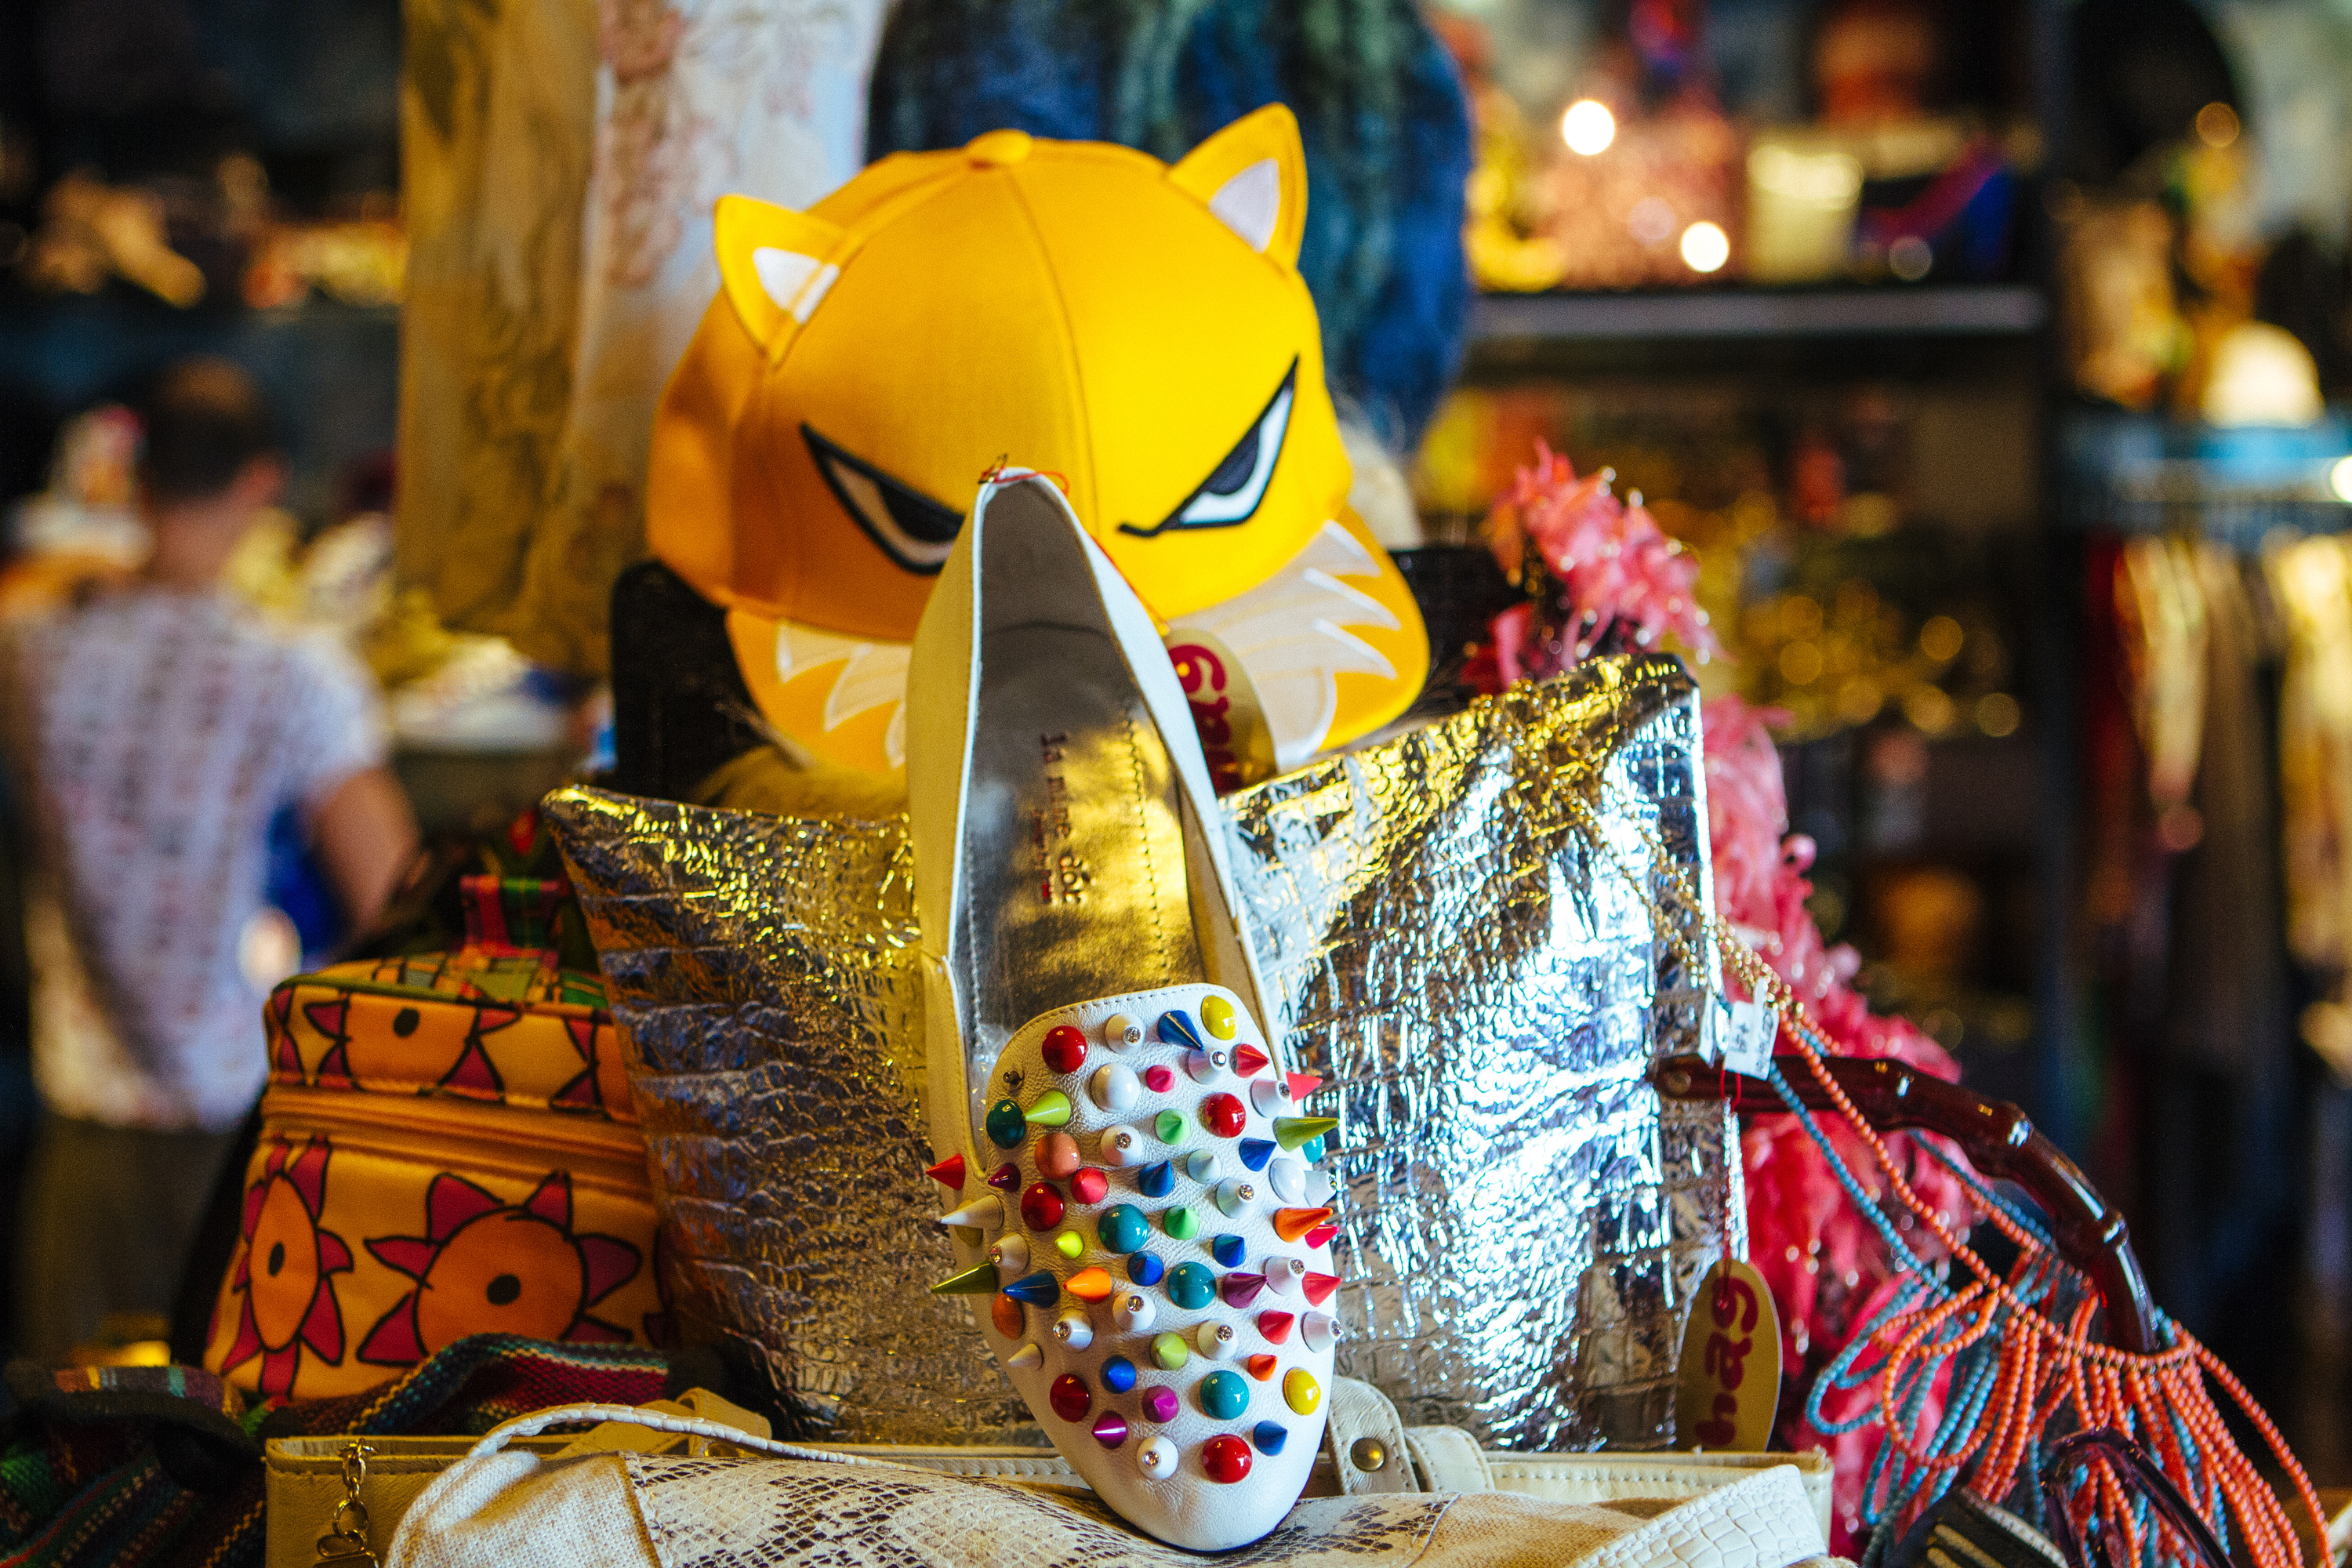 The best vintage shops in Melbourne